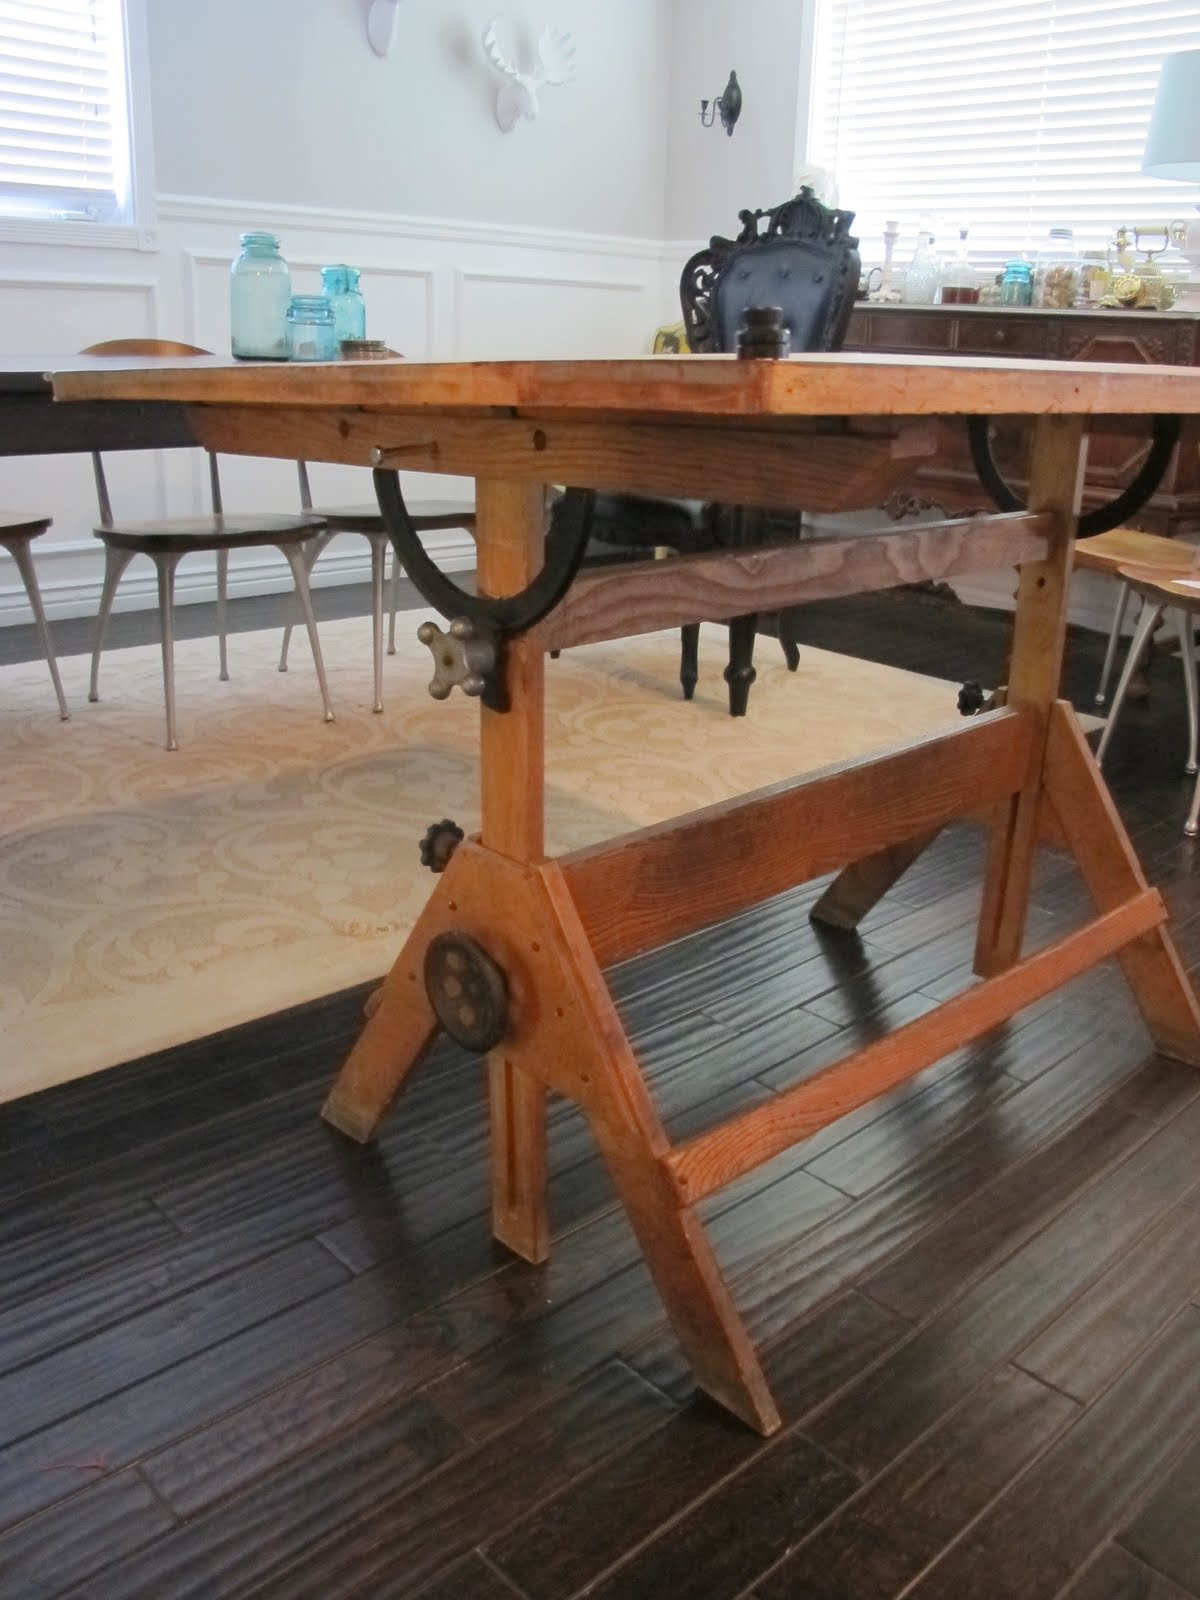 Vintage Drafting Table Turned Dining Table - Dream Book Design